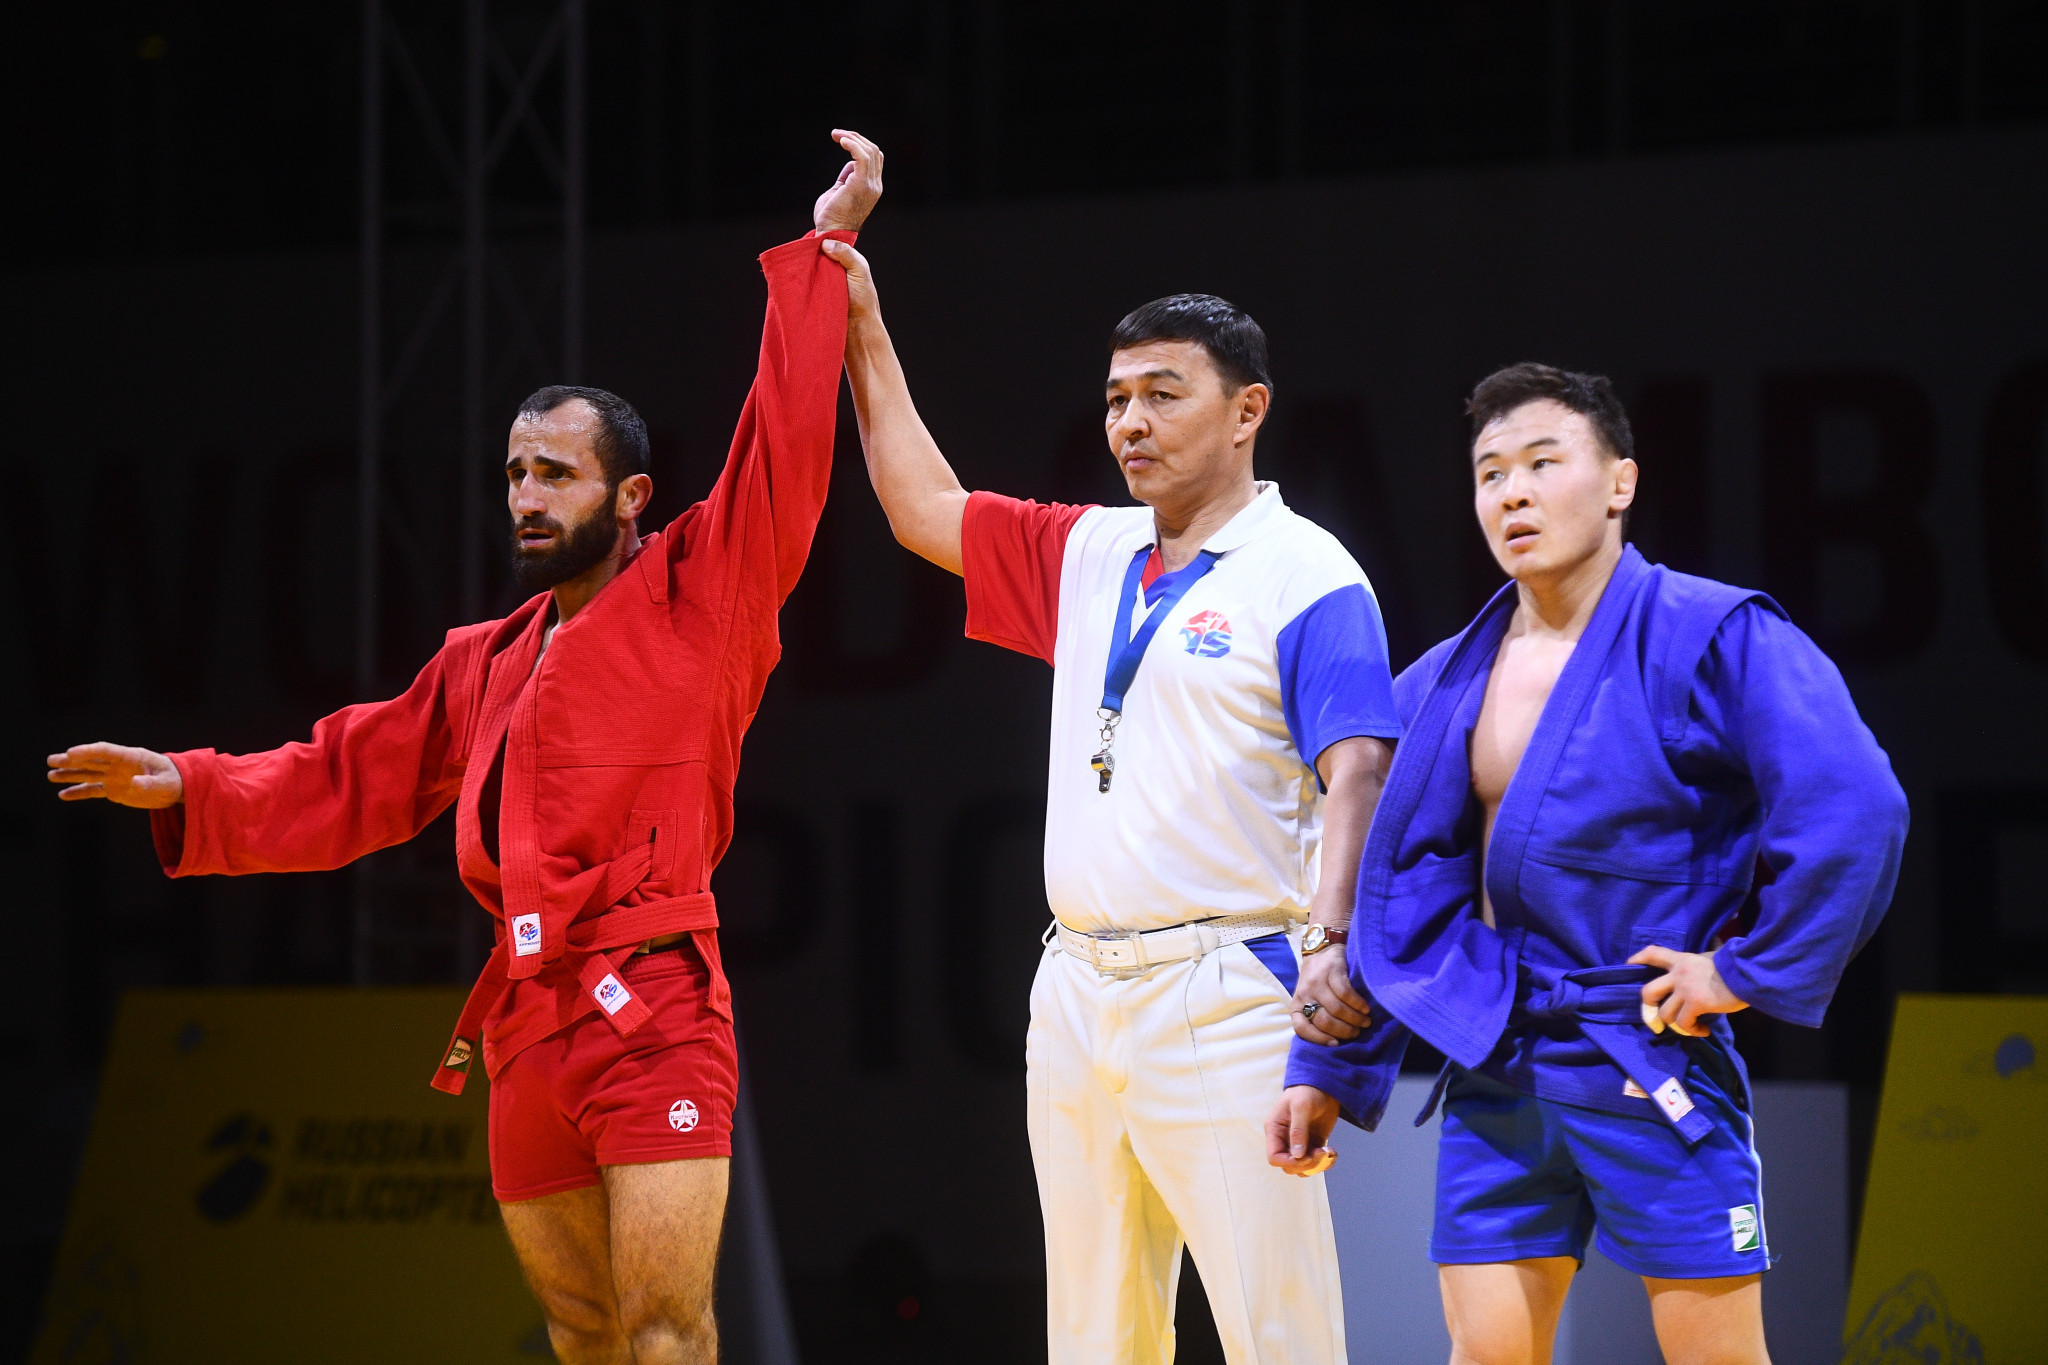 Vakhtangi Chidrashvili defeated Sayan Khertek to secure the 57kg title ©FIAS